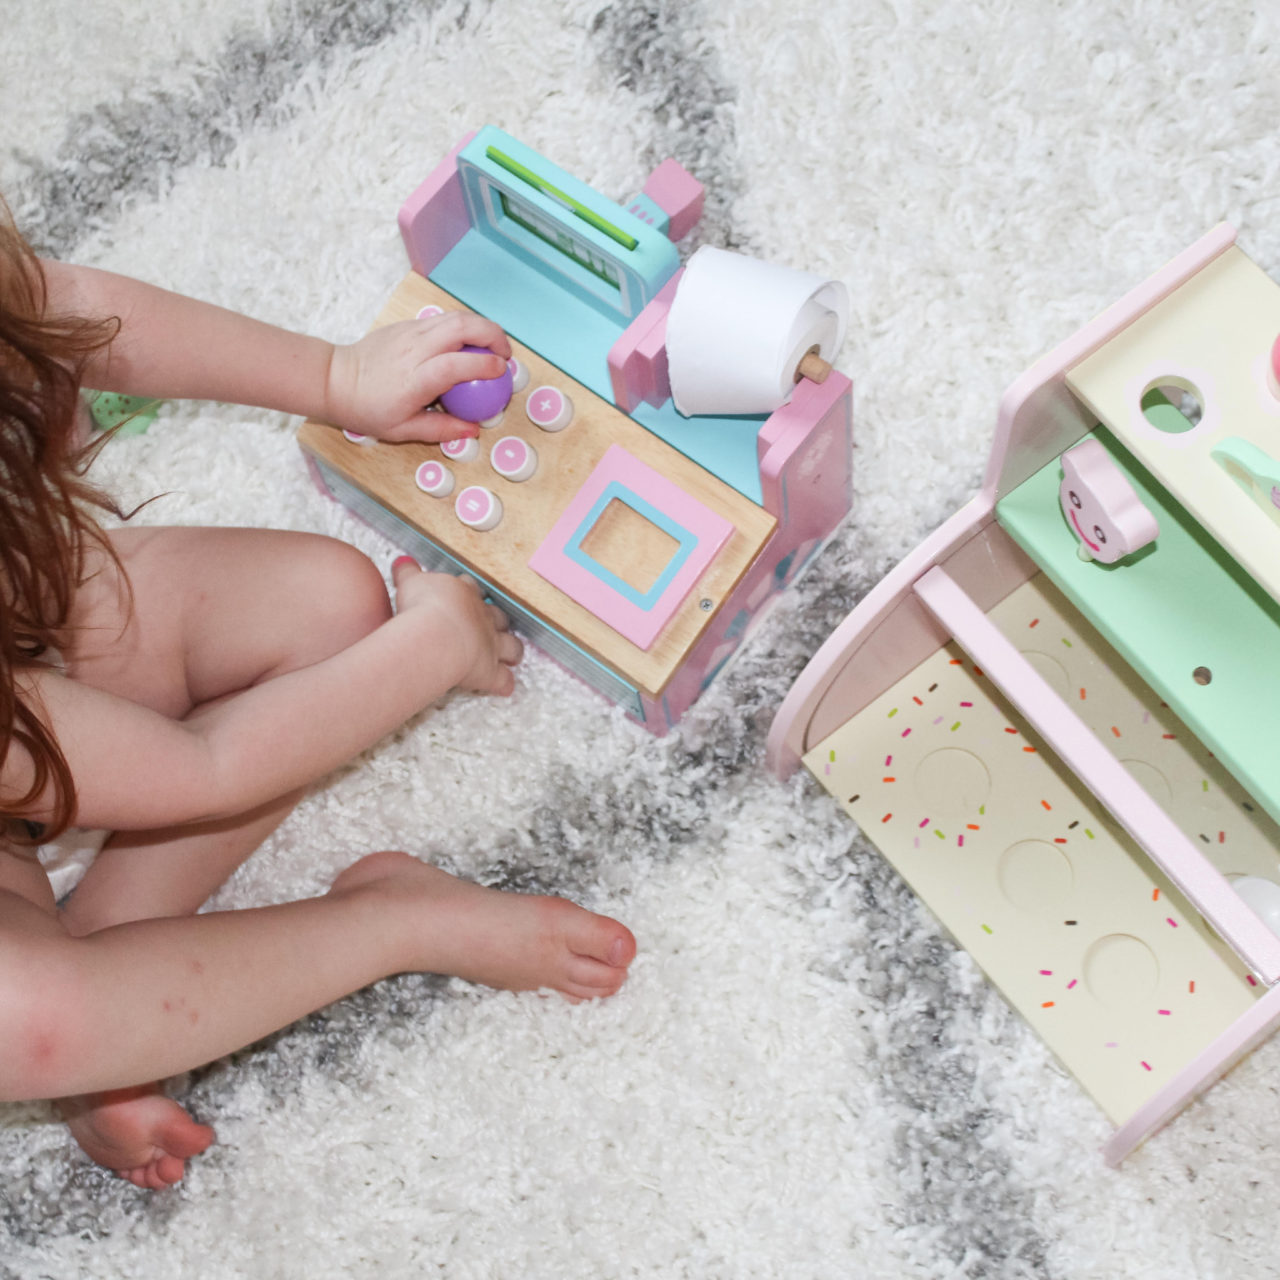 The BEST TOYS for Preschoolers!